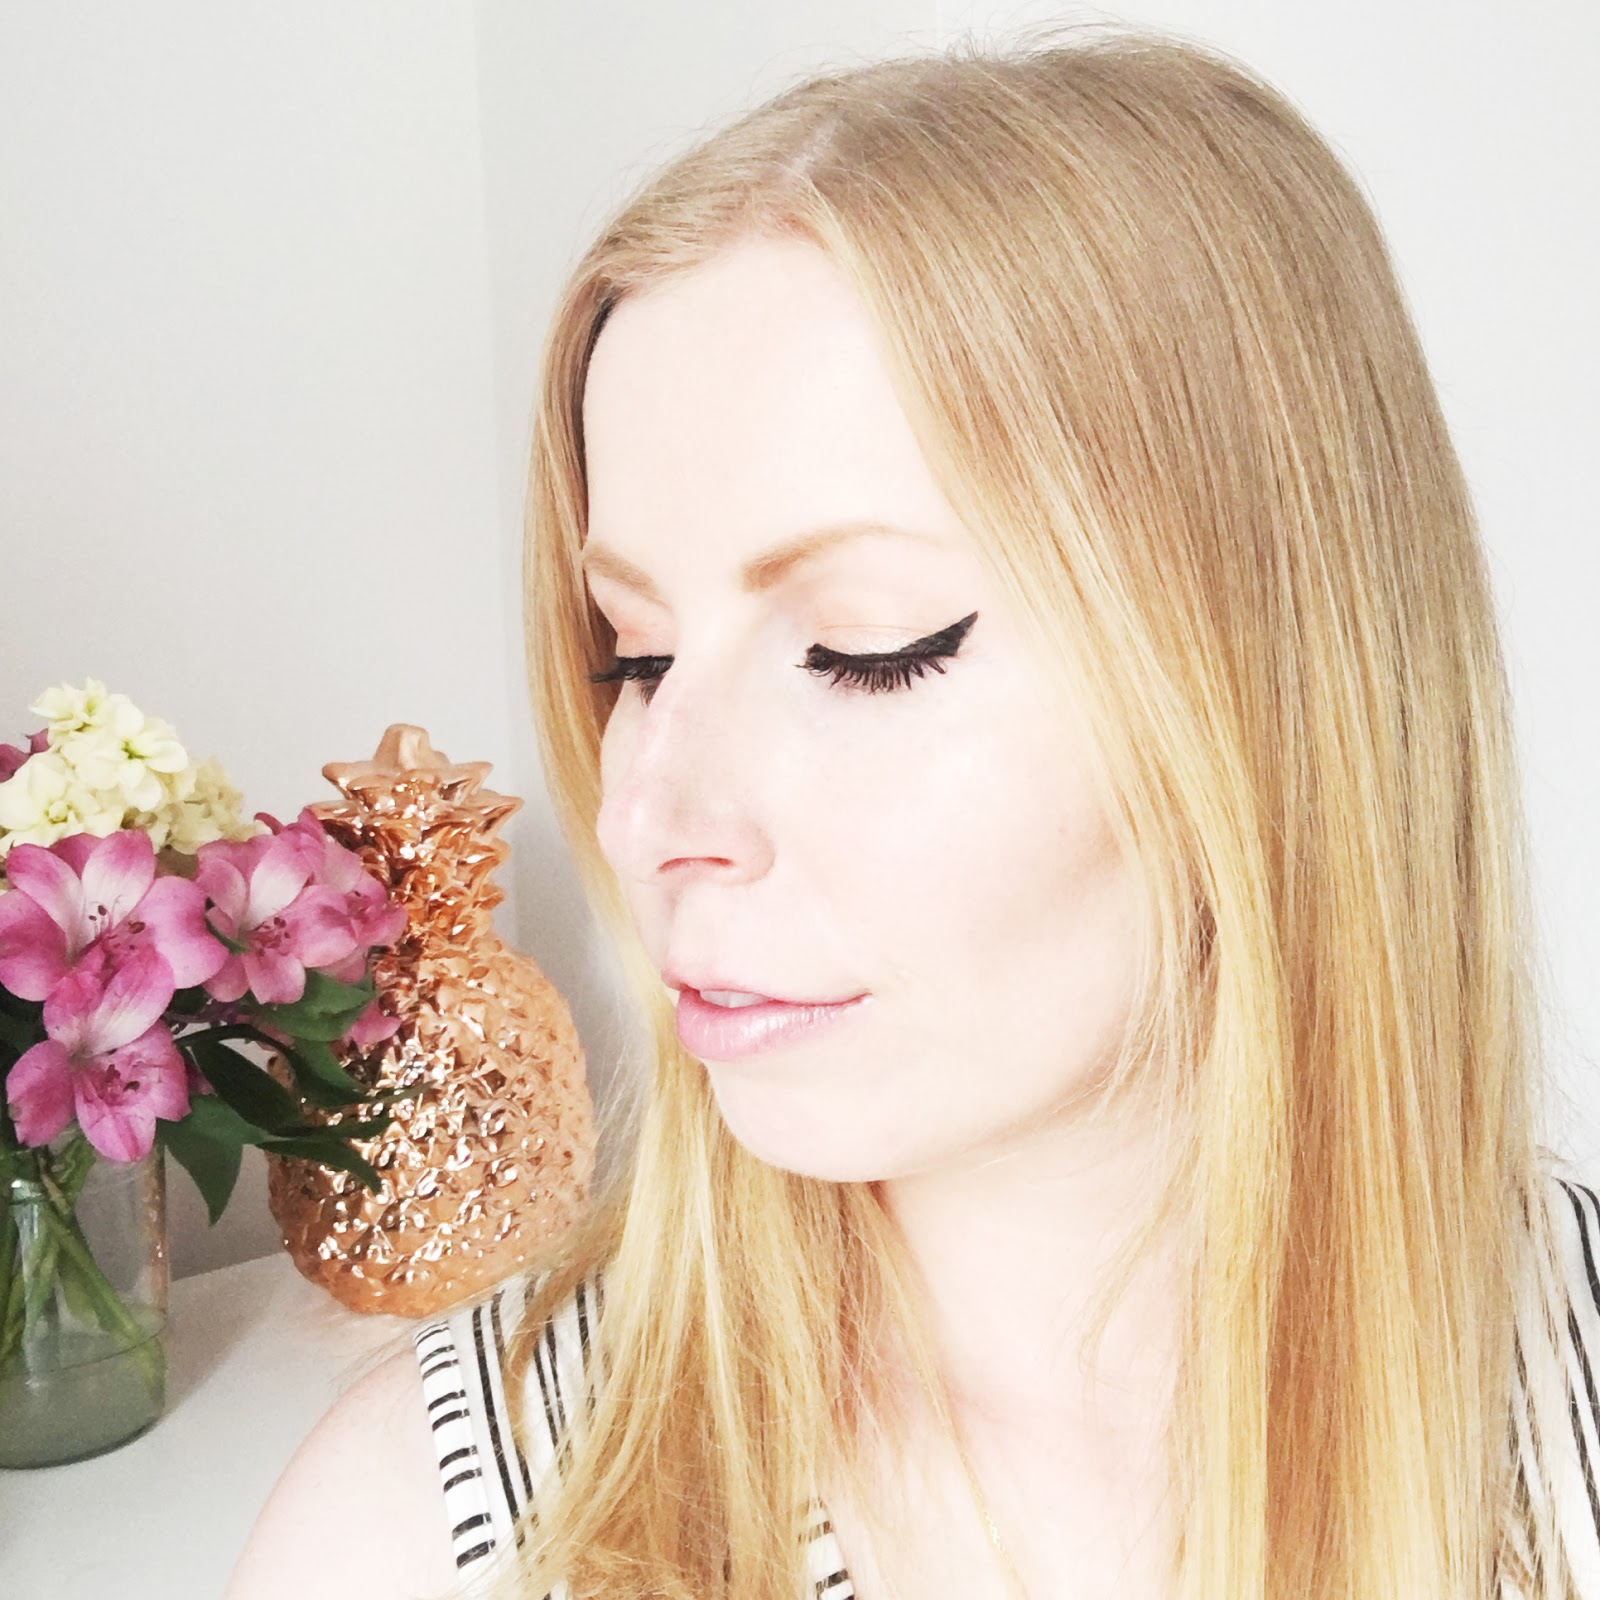 Lancome Grandiose eye liner review -swatches on eyes